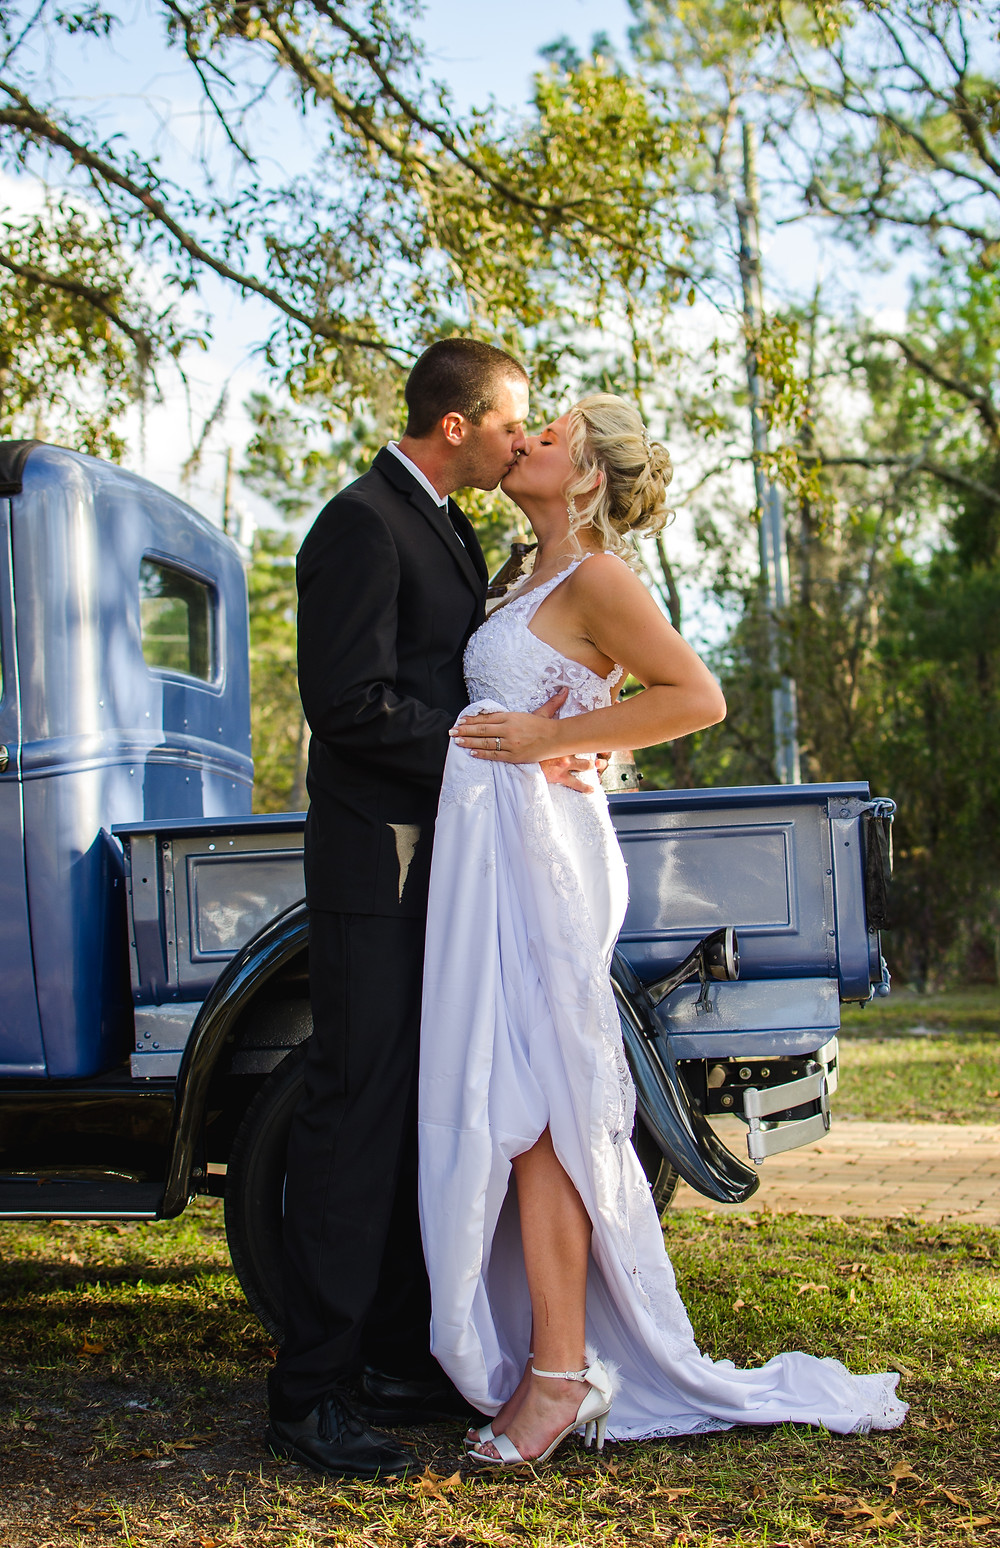 Antique car wedding portrait